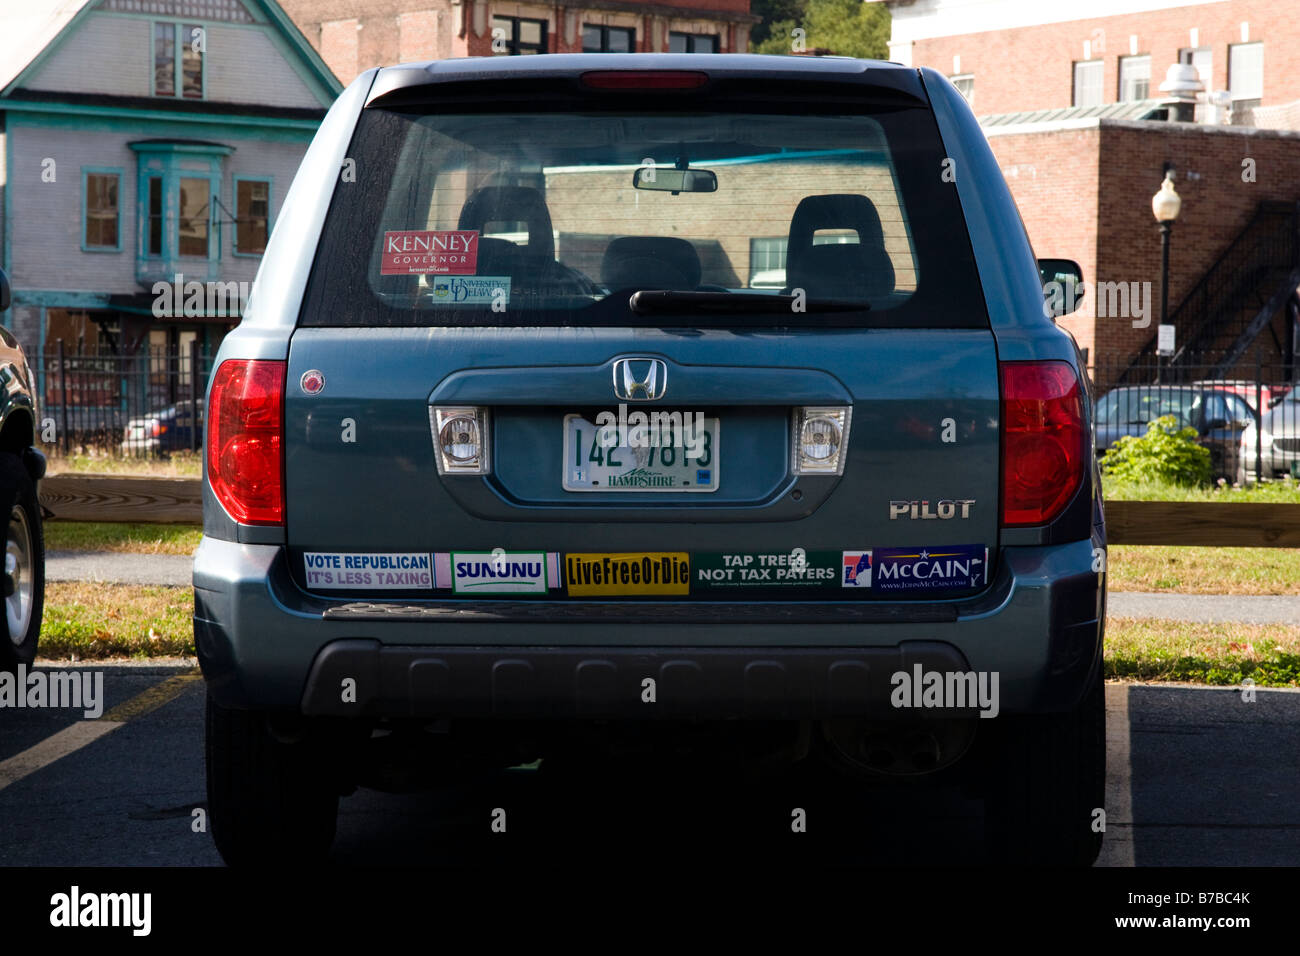 Bumper Stickers Usa Stock Photos & Bumper Stickers Usa Stock